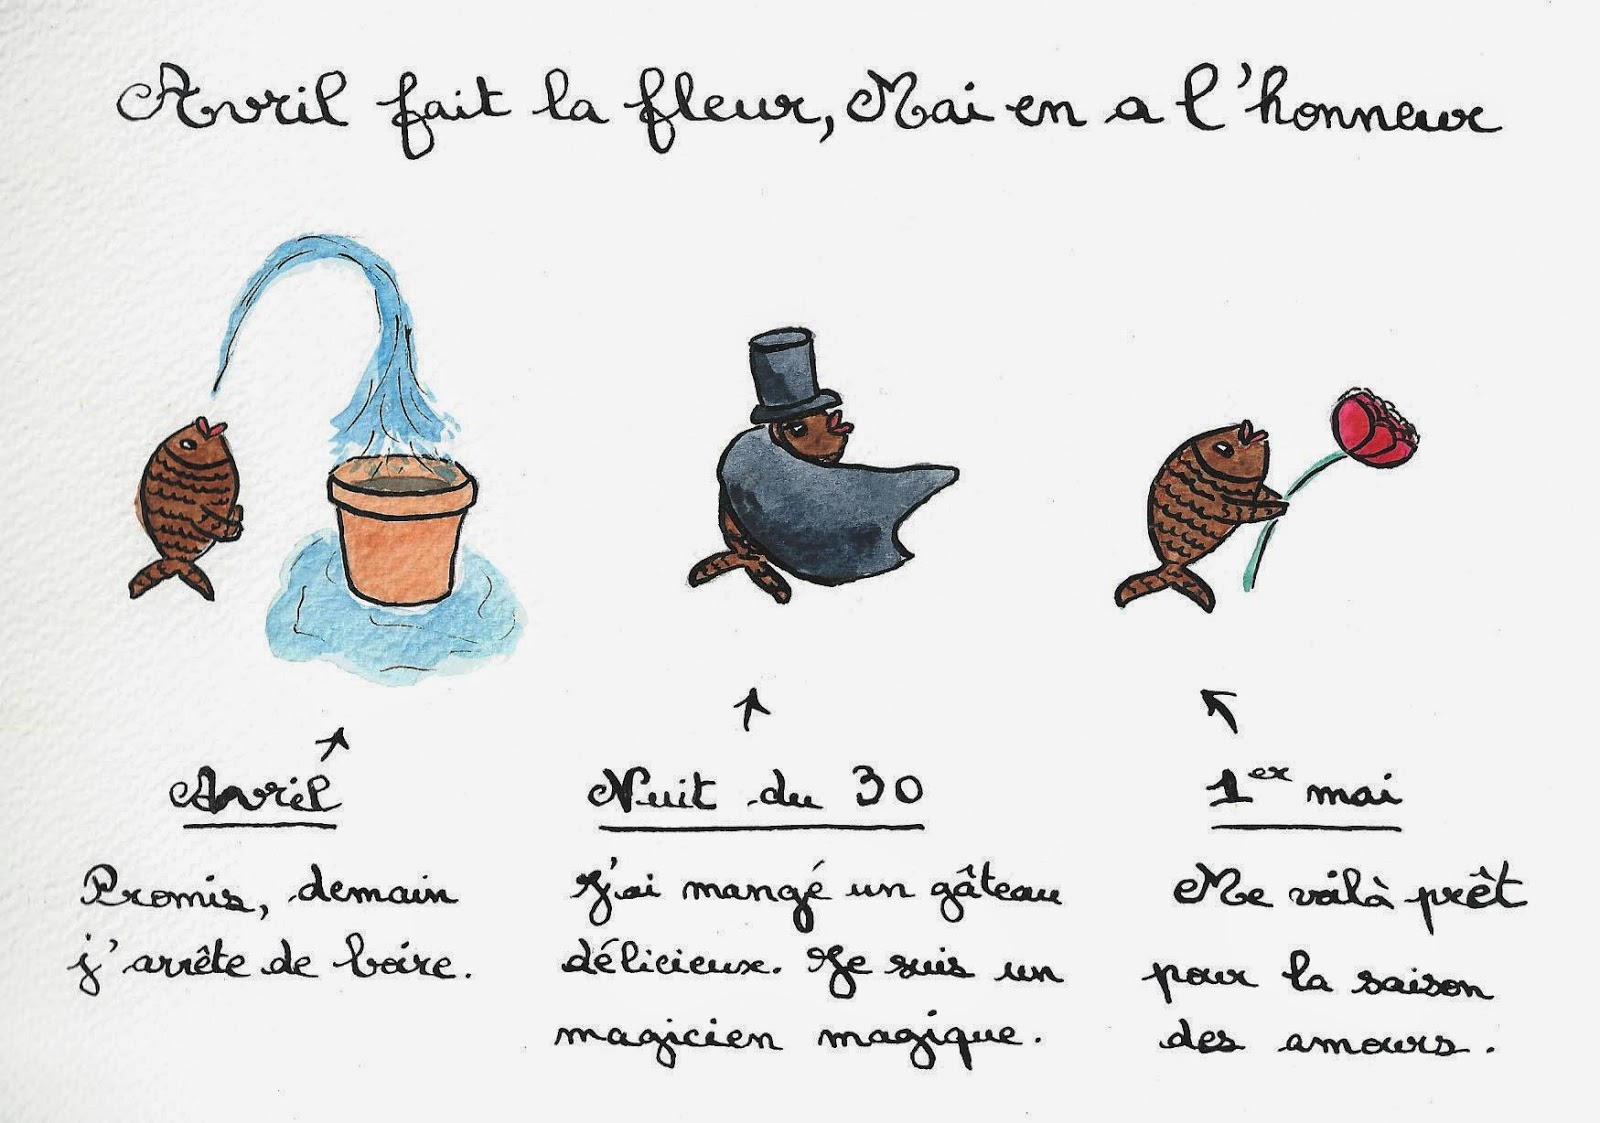 Les aventures de Poissonou the Fish, le poisson d'avril #boire #eau #manger #cape #cueillir #pivoine